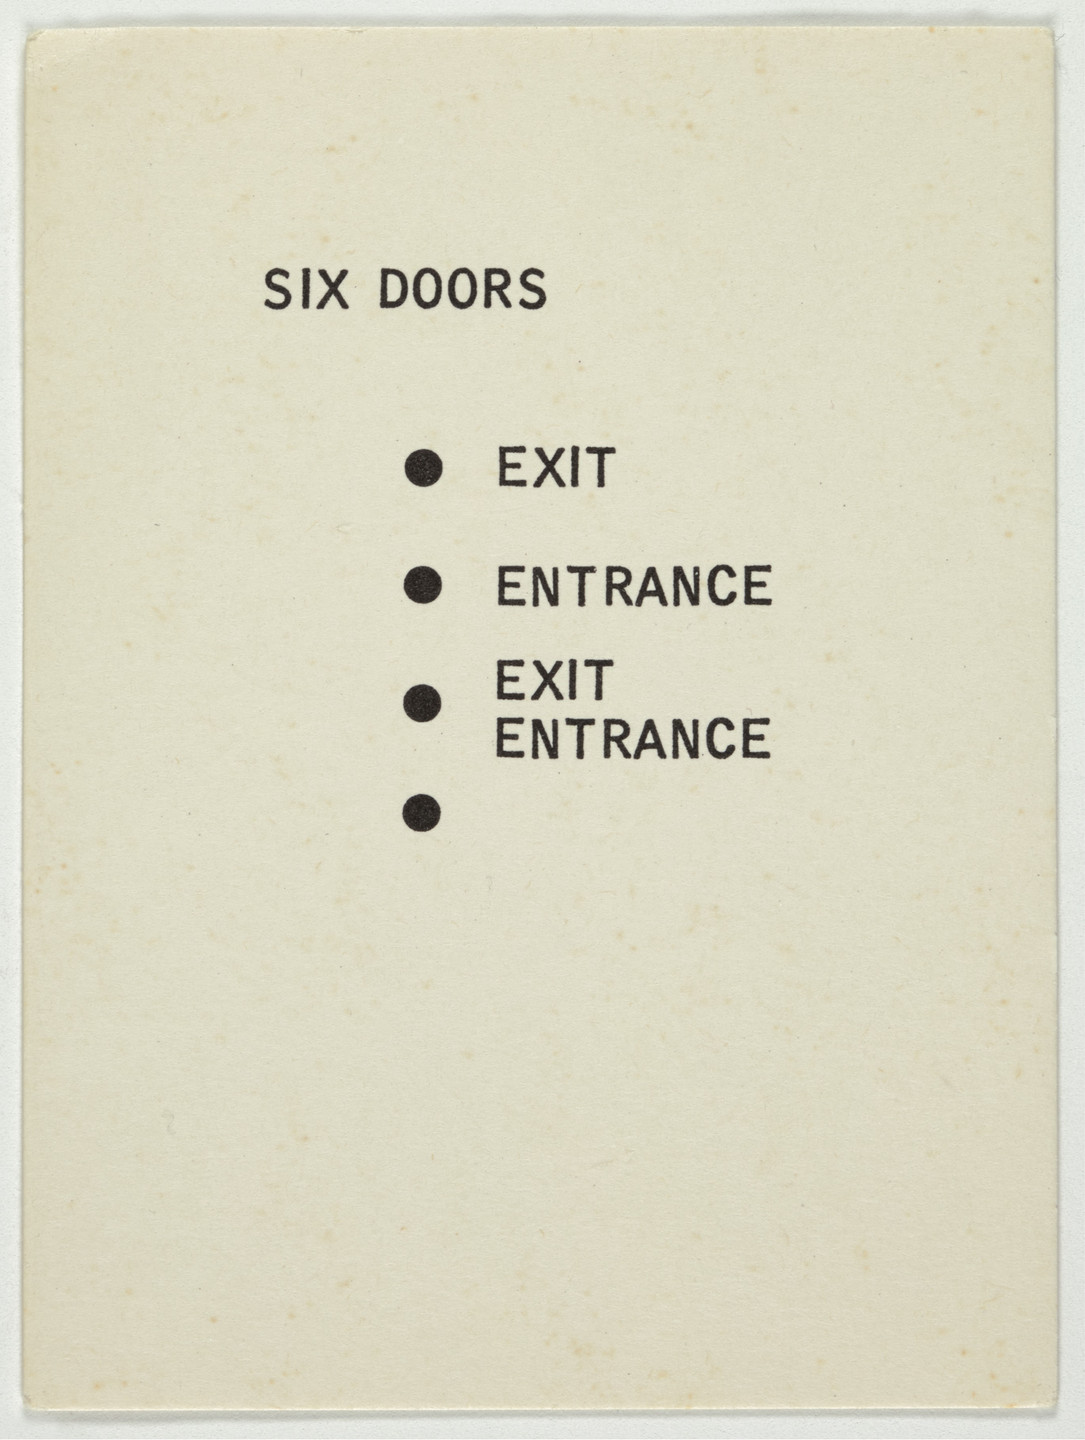 George Brecht. Six Doors from Water Yam. 1963